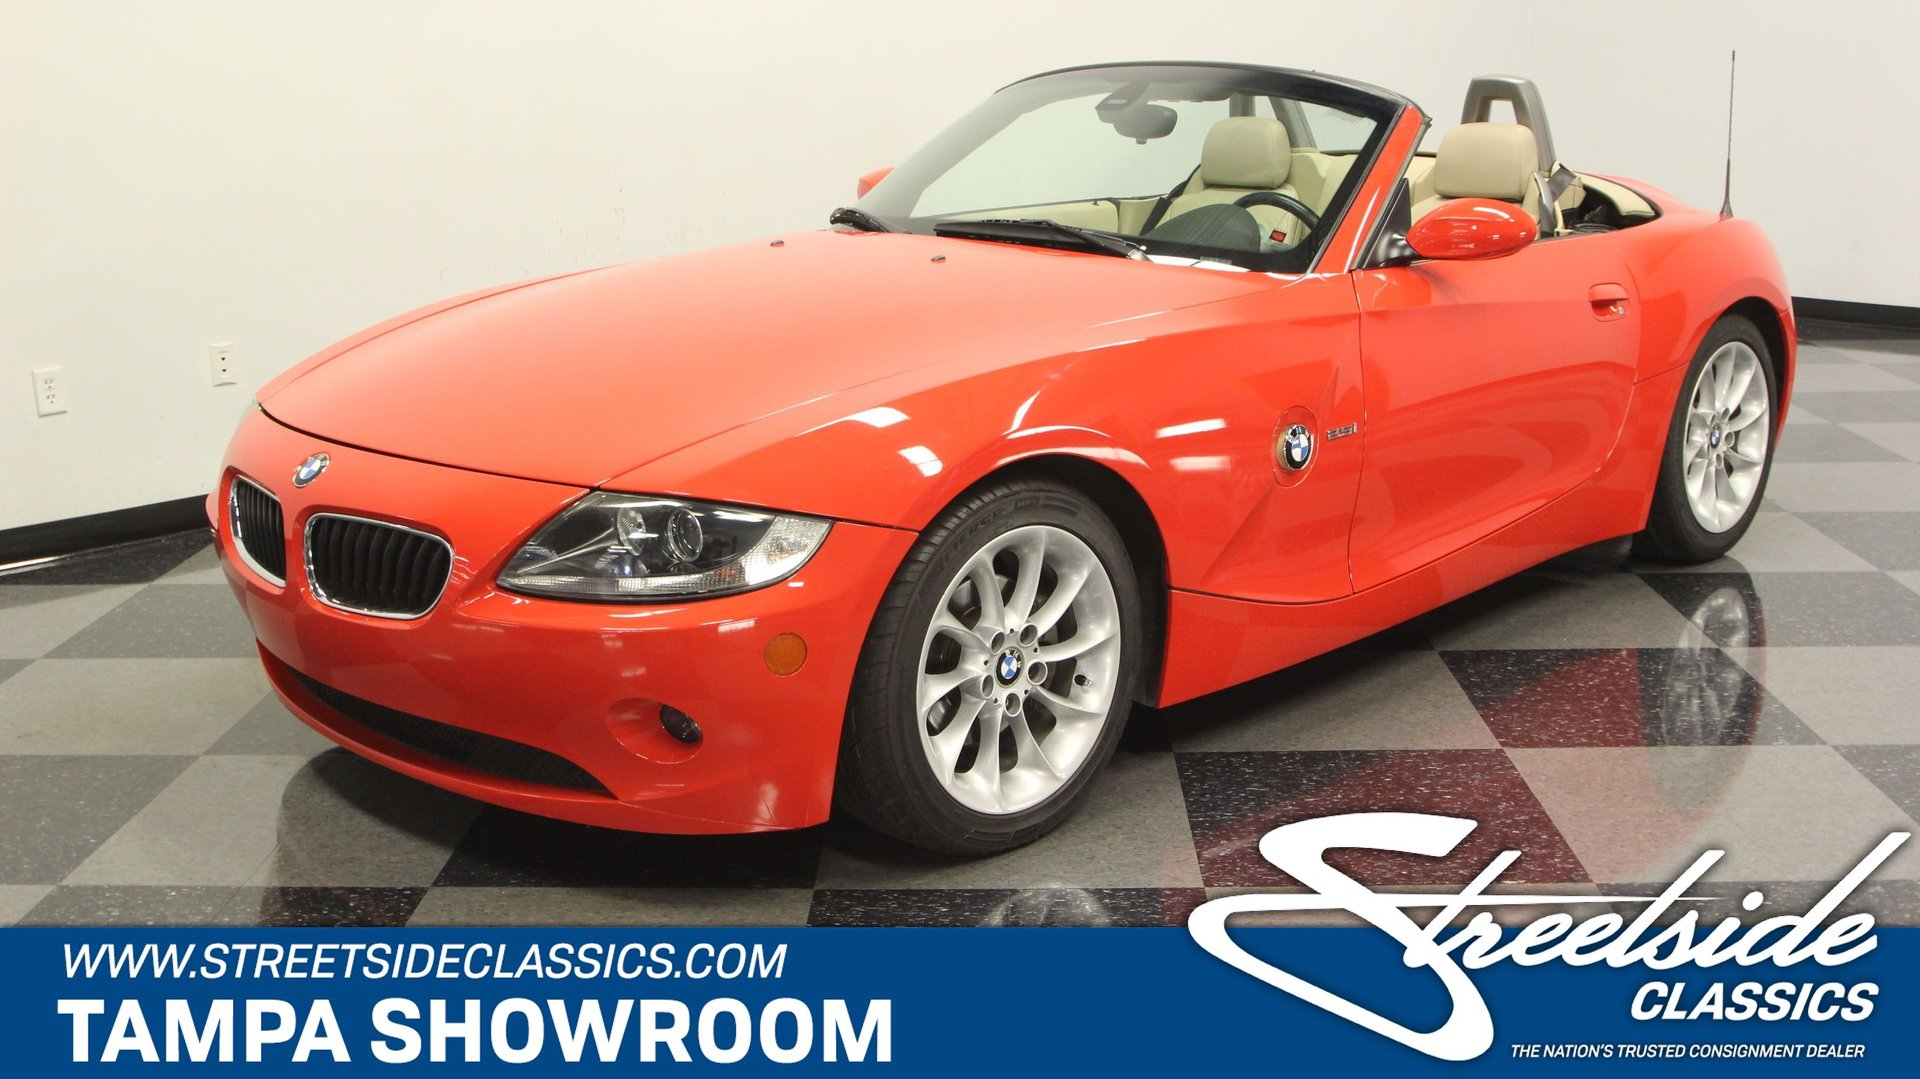 2005 Bmw Z4 Streetside Classics The Nation S Trusted Classic Car Consignment Dealer